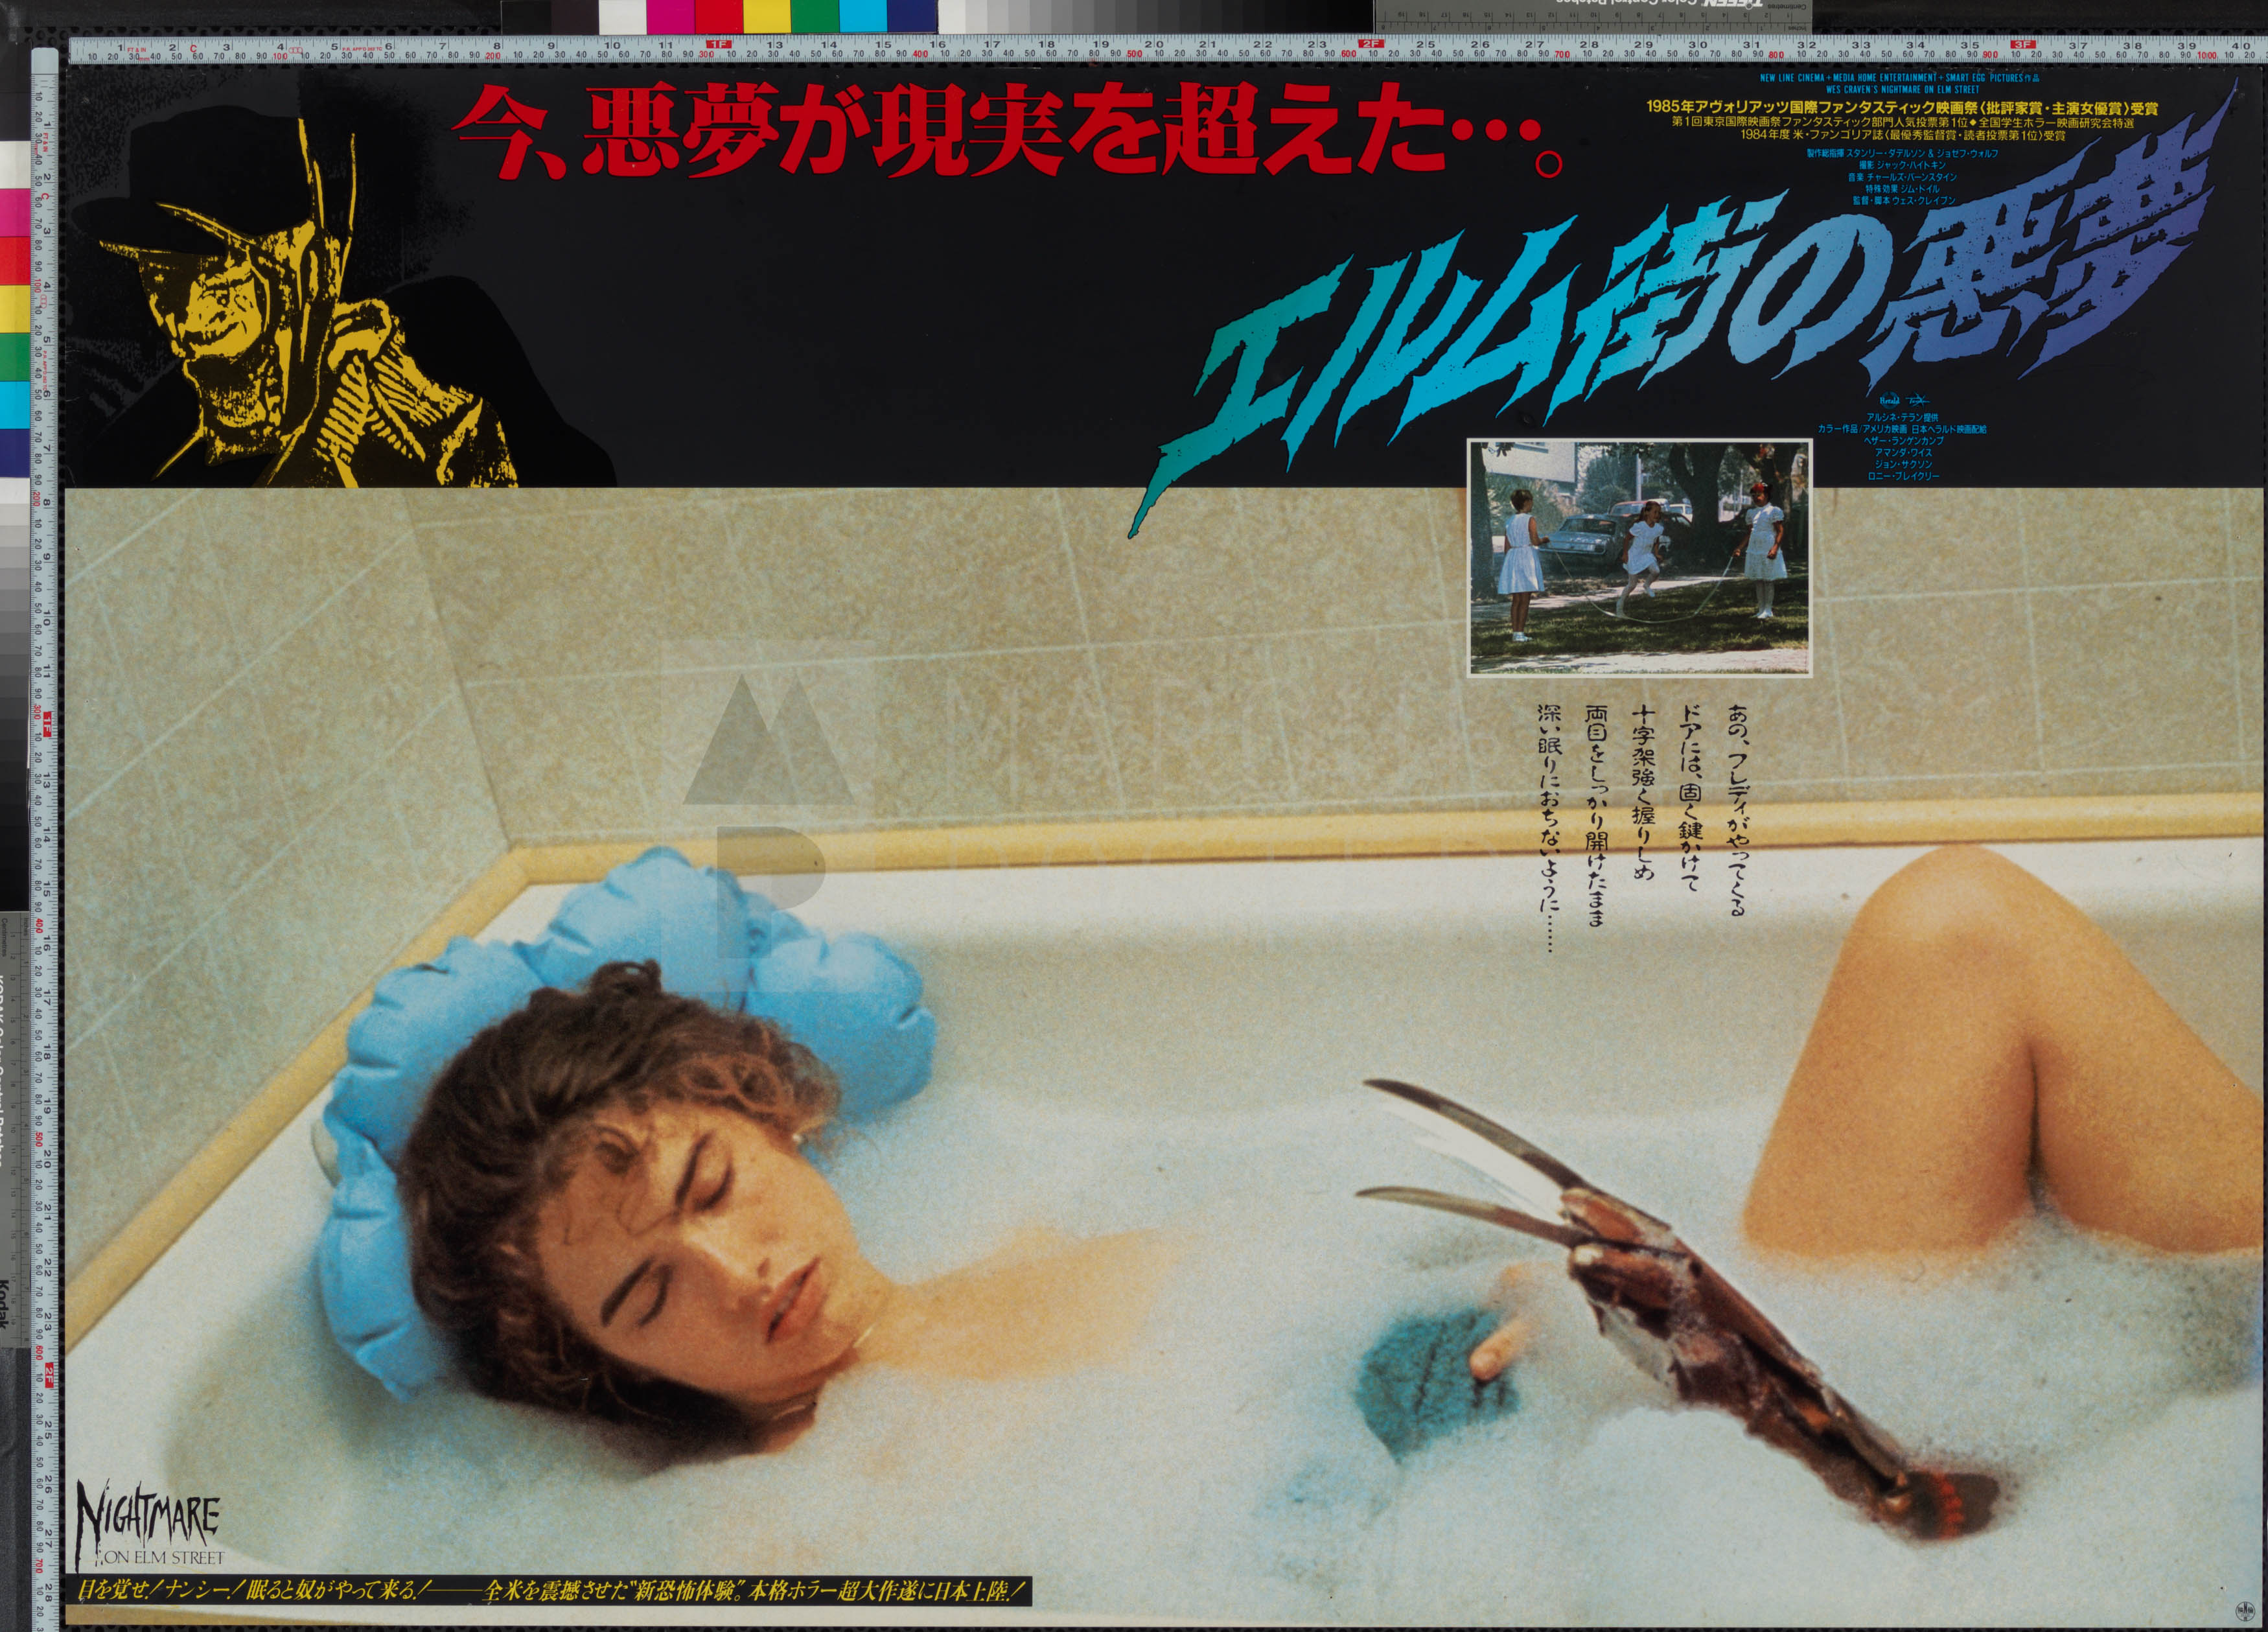 20-nightmare-on-elm-street-bathtub-style-japanese-b1-1986-02